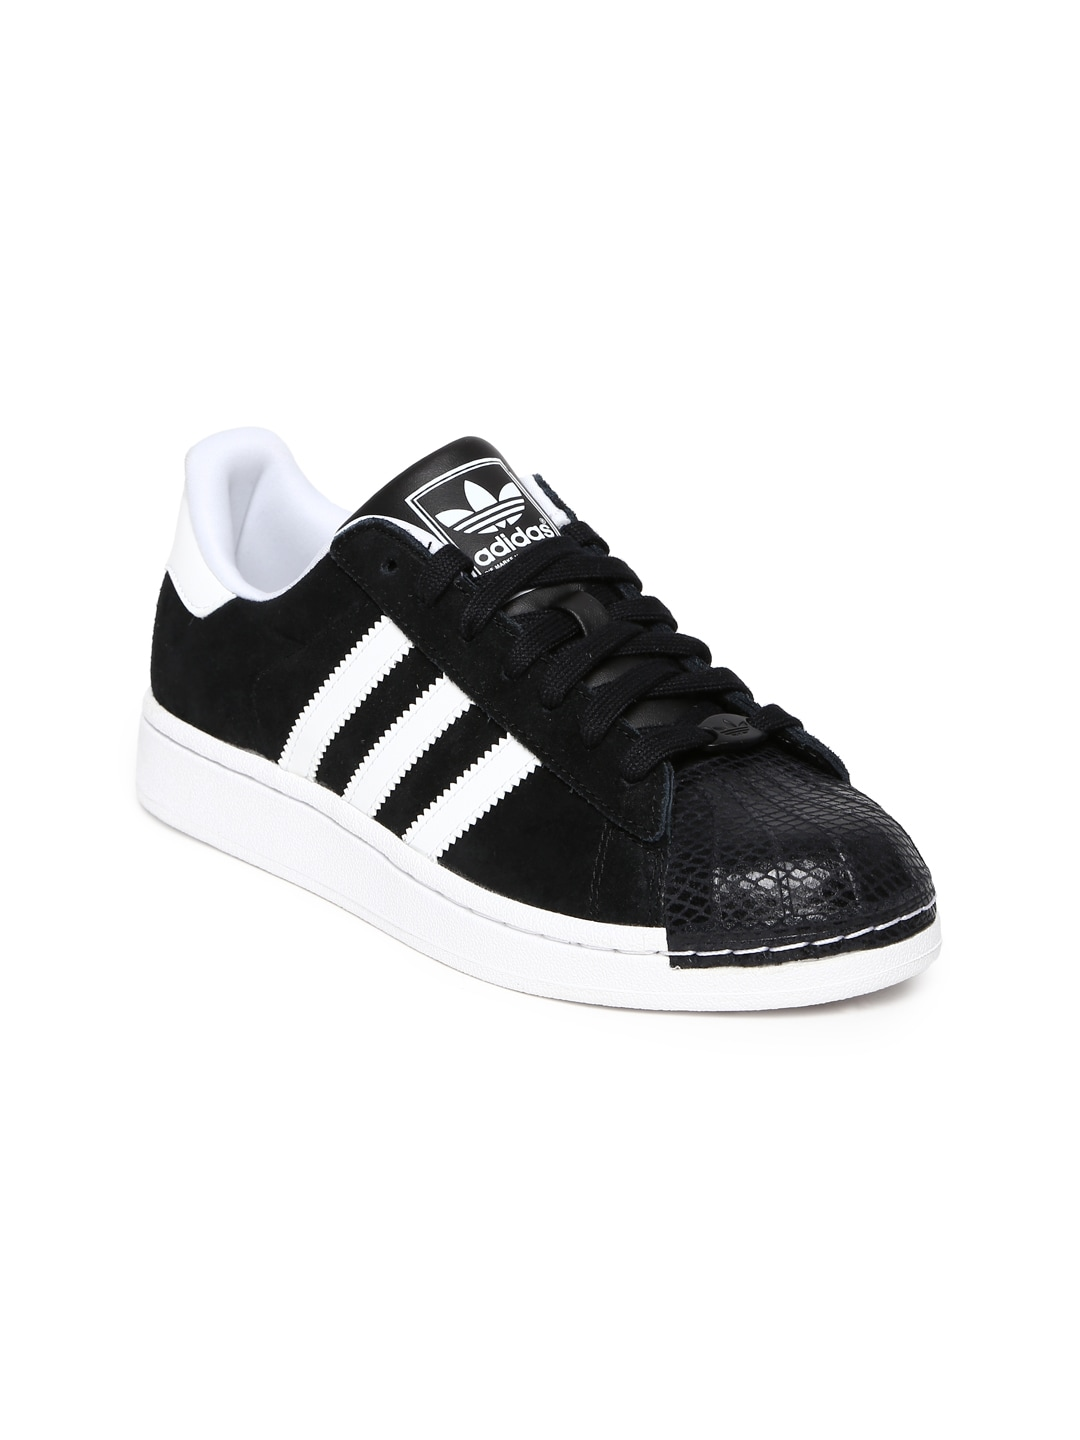 Adidas Toe Shoes Online India